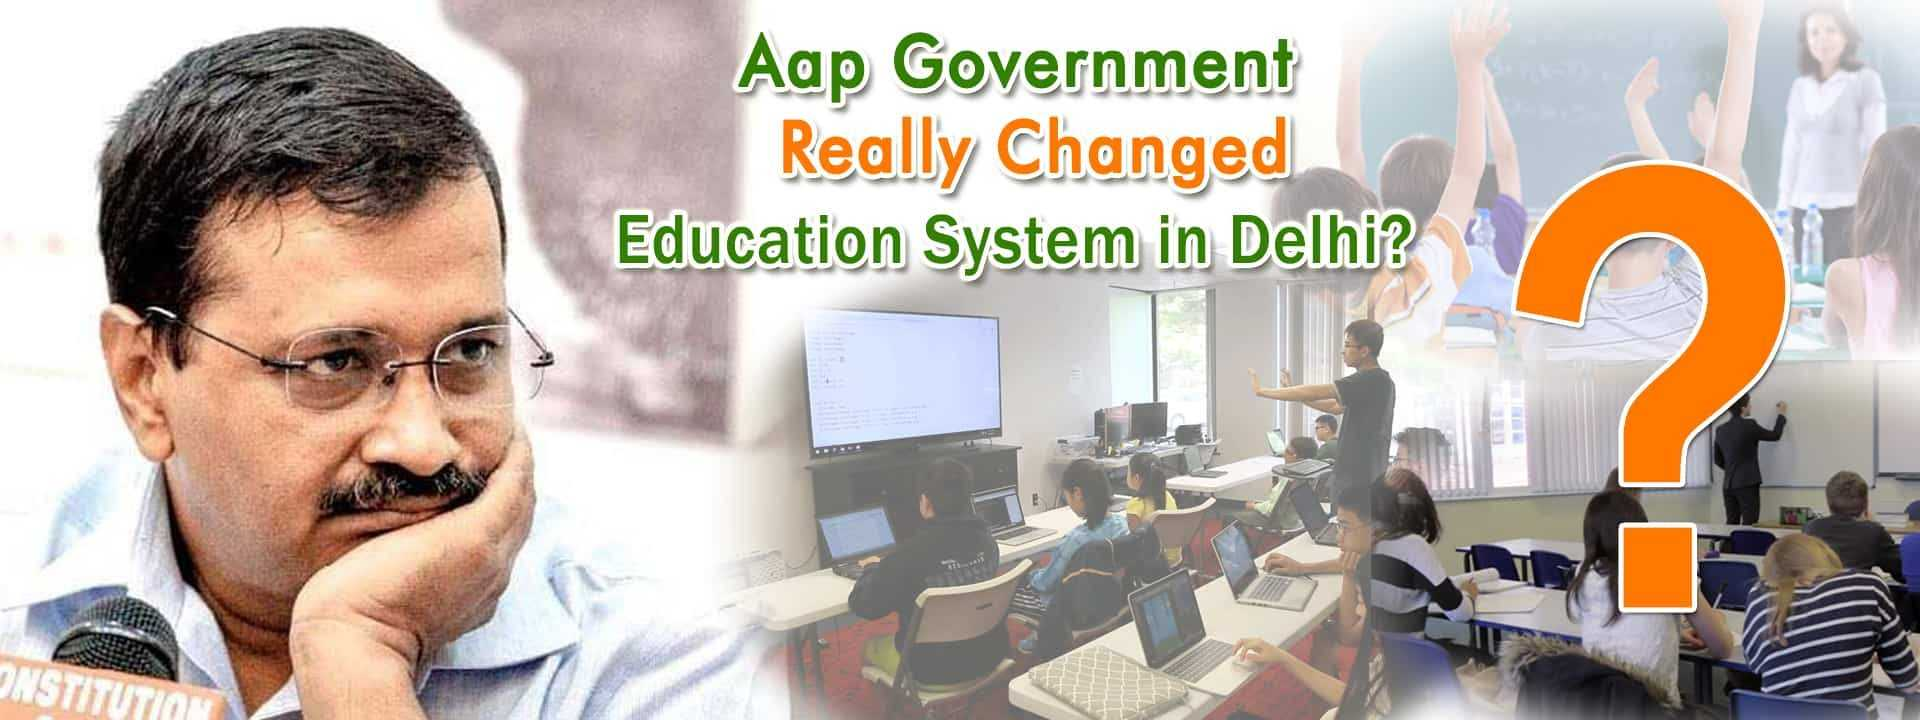 aap-government-really-change-education-system-in-delhi